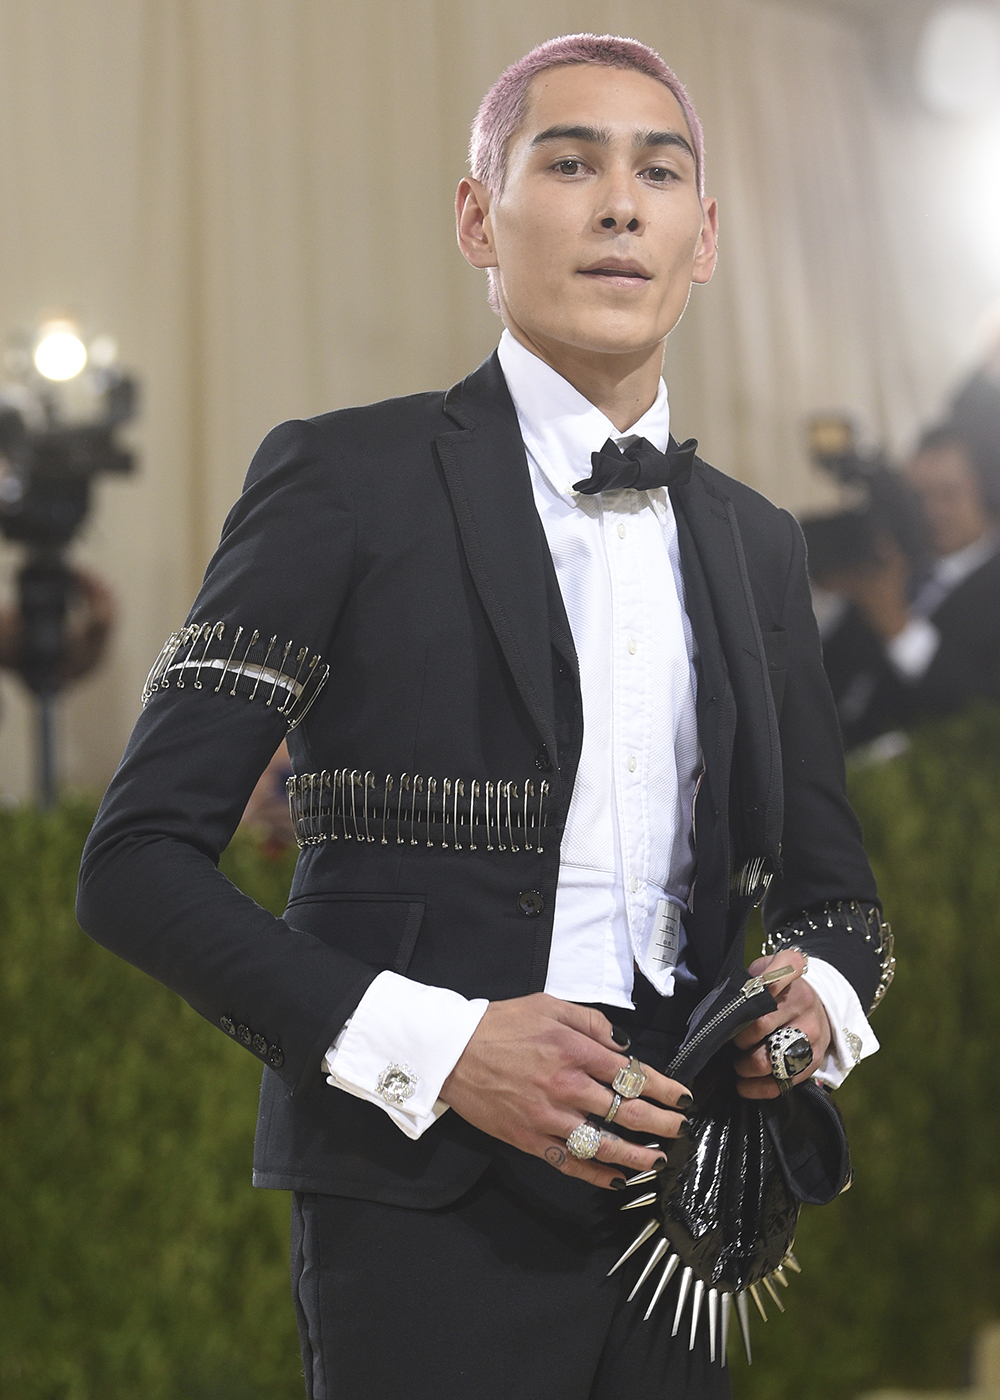 """Evan Mock attends The Metropolitan Museum of Art's Costume Institute benefit gala celebrating the opening of the """"In America: A Lexicon of Fashion"""" exhibition on Monday, Sept. 13, 2021, in New York. (Photo by Evan Agostini/Invision/AP)"""